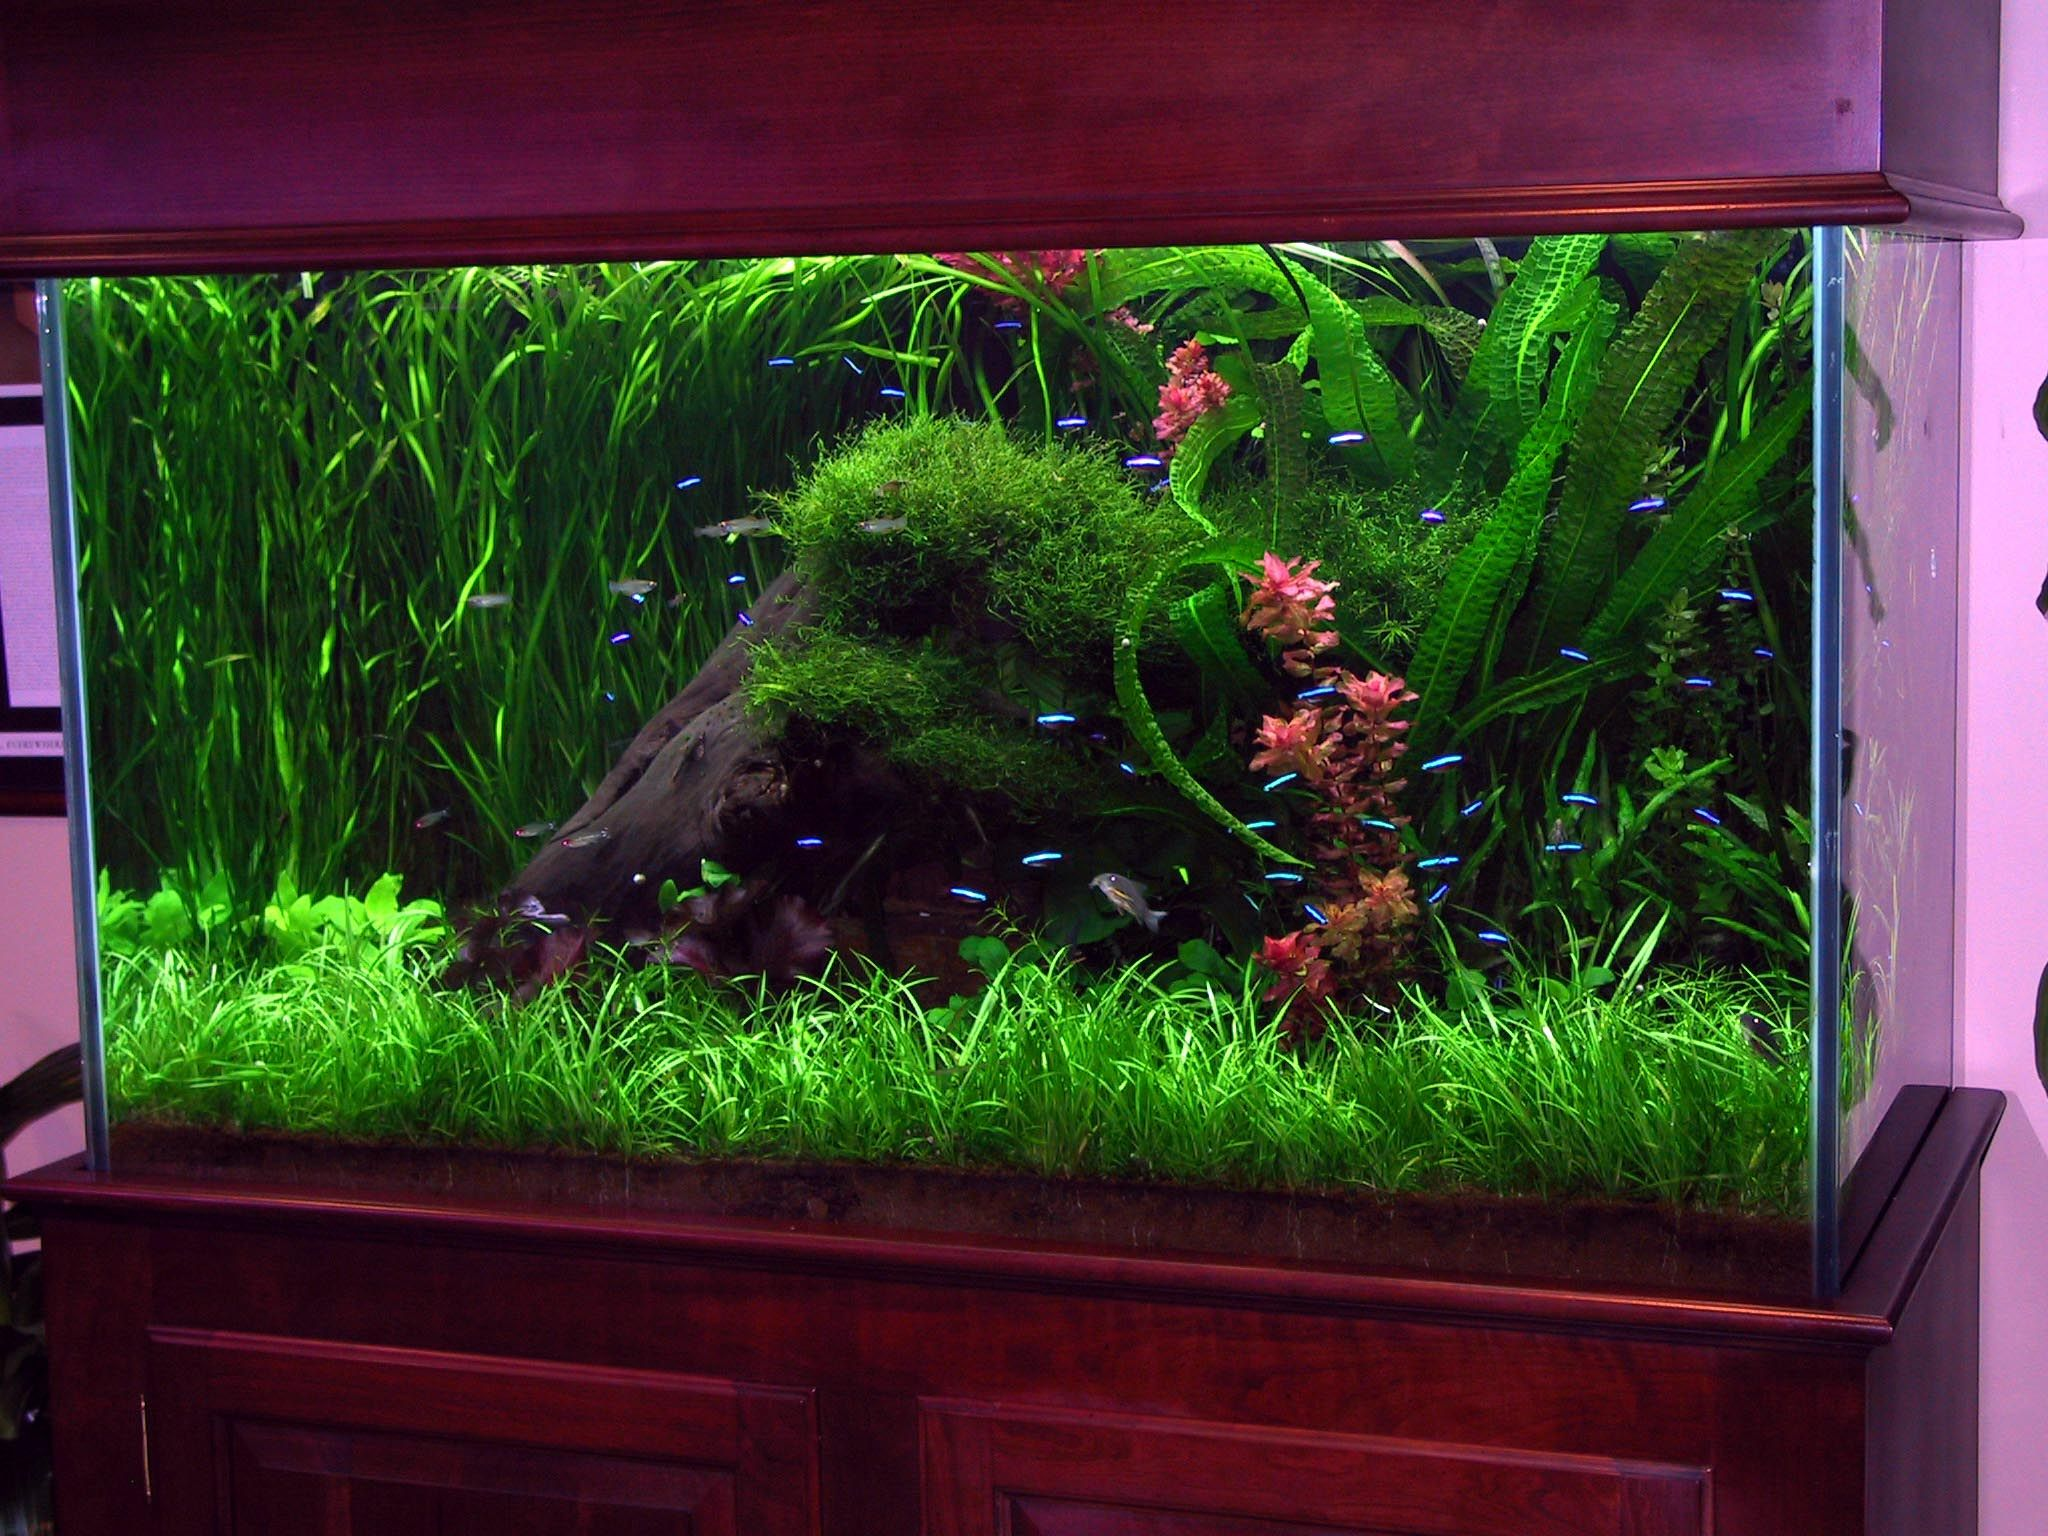 Fish aquarium olx delhi - Freshwater Aquarium Fish Pictures